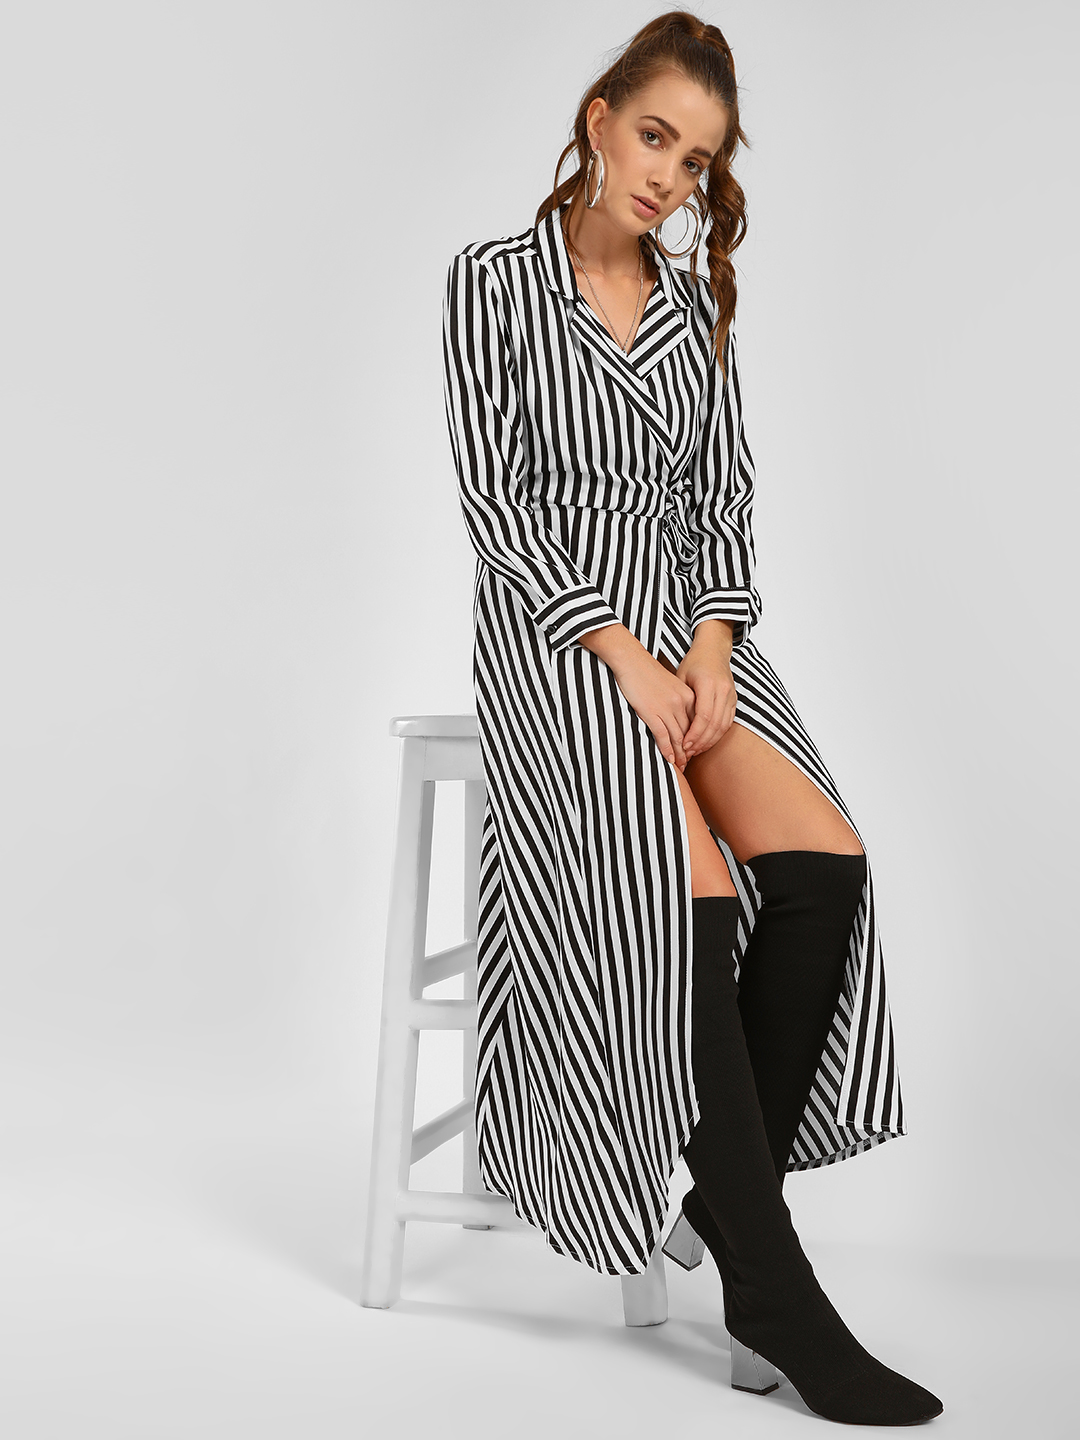 Foreva Young Multi Striped Wrap Shirt Dress 1